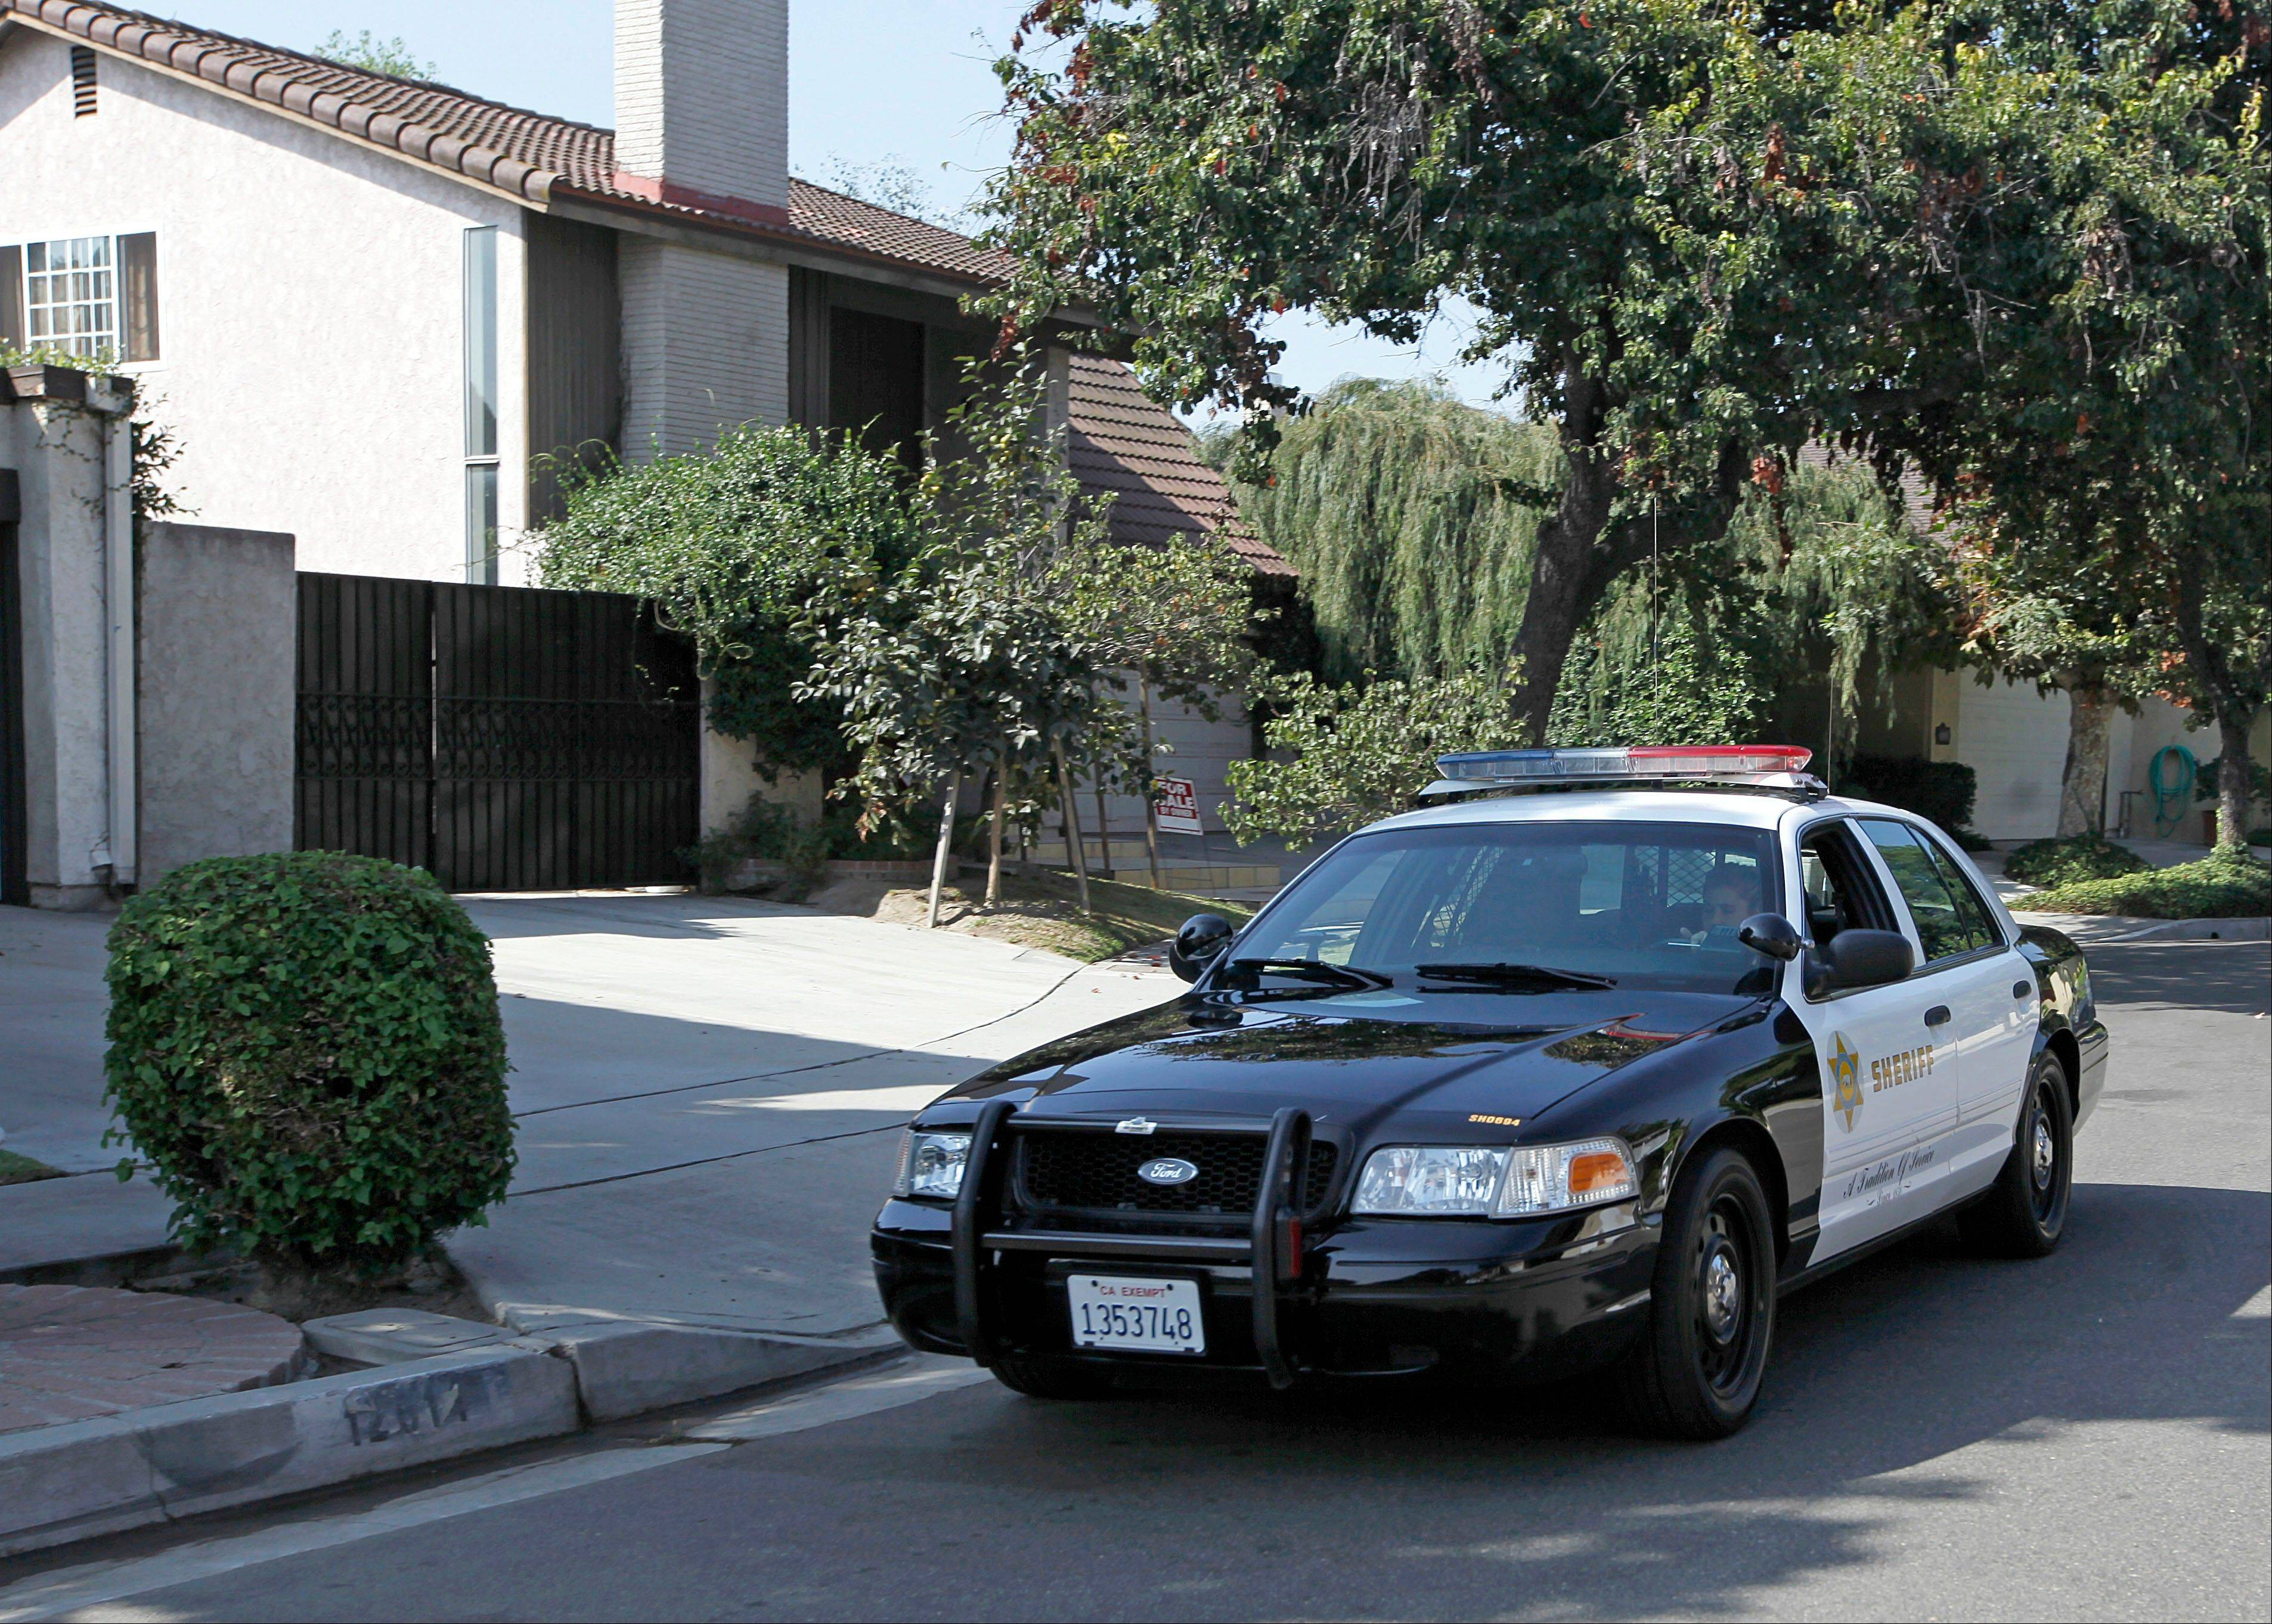 A Los Angeles County Serriff�s deputy in a patrol car passes the home of Nakoula Basseley Nakoula, the man who made the film �Innocence of Muslims� that has sparked violent protests, on a street in Cerritos, Calif., Tuesday, Sept. 25, 2012. The filmmaker has received death threats and was forced into hiding, putting his house up for sale, after the 14-minute movie trailer rose to prominence.